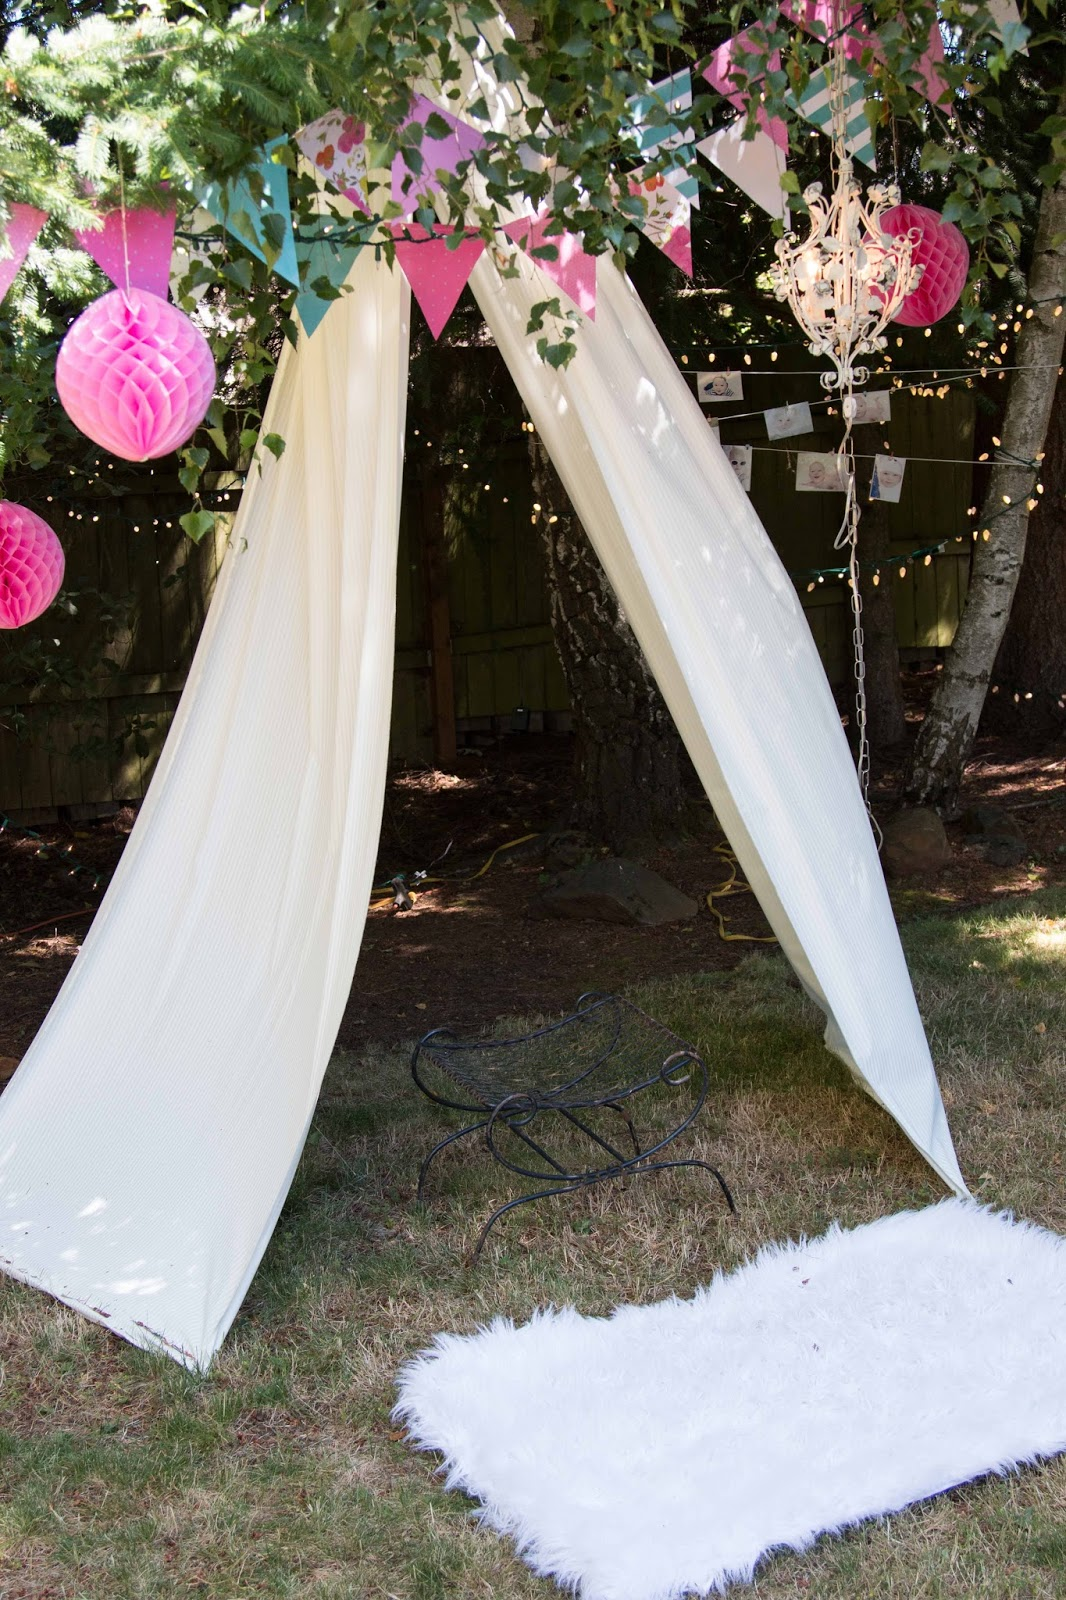 Craft Warehouse - Gl&ing DIY Photo Booth Tent & Craft Warehouse - Glamping DIY Photo Booth Tent - Create Often